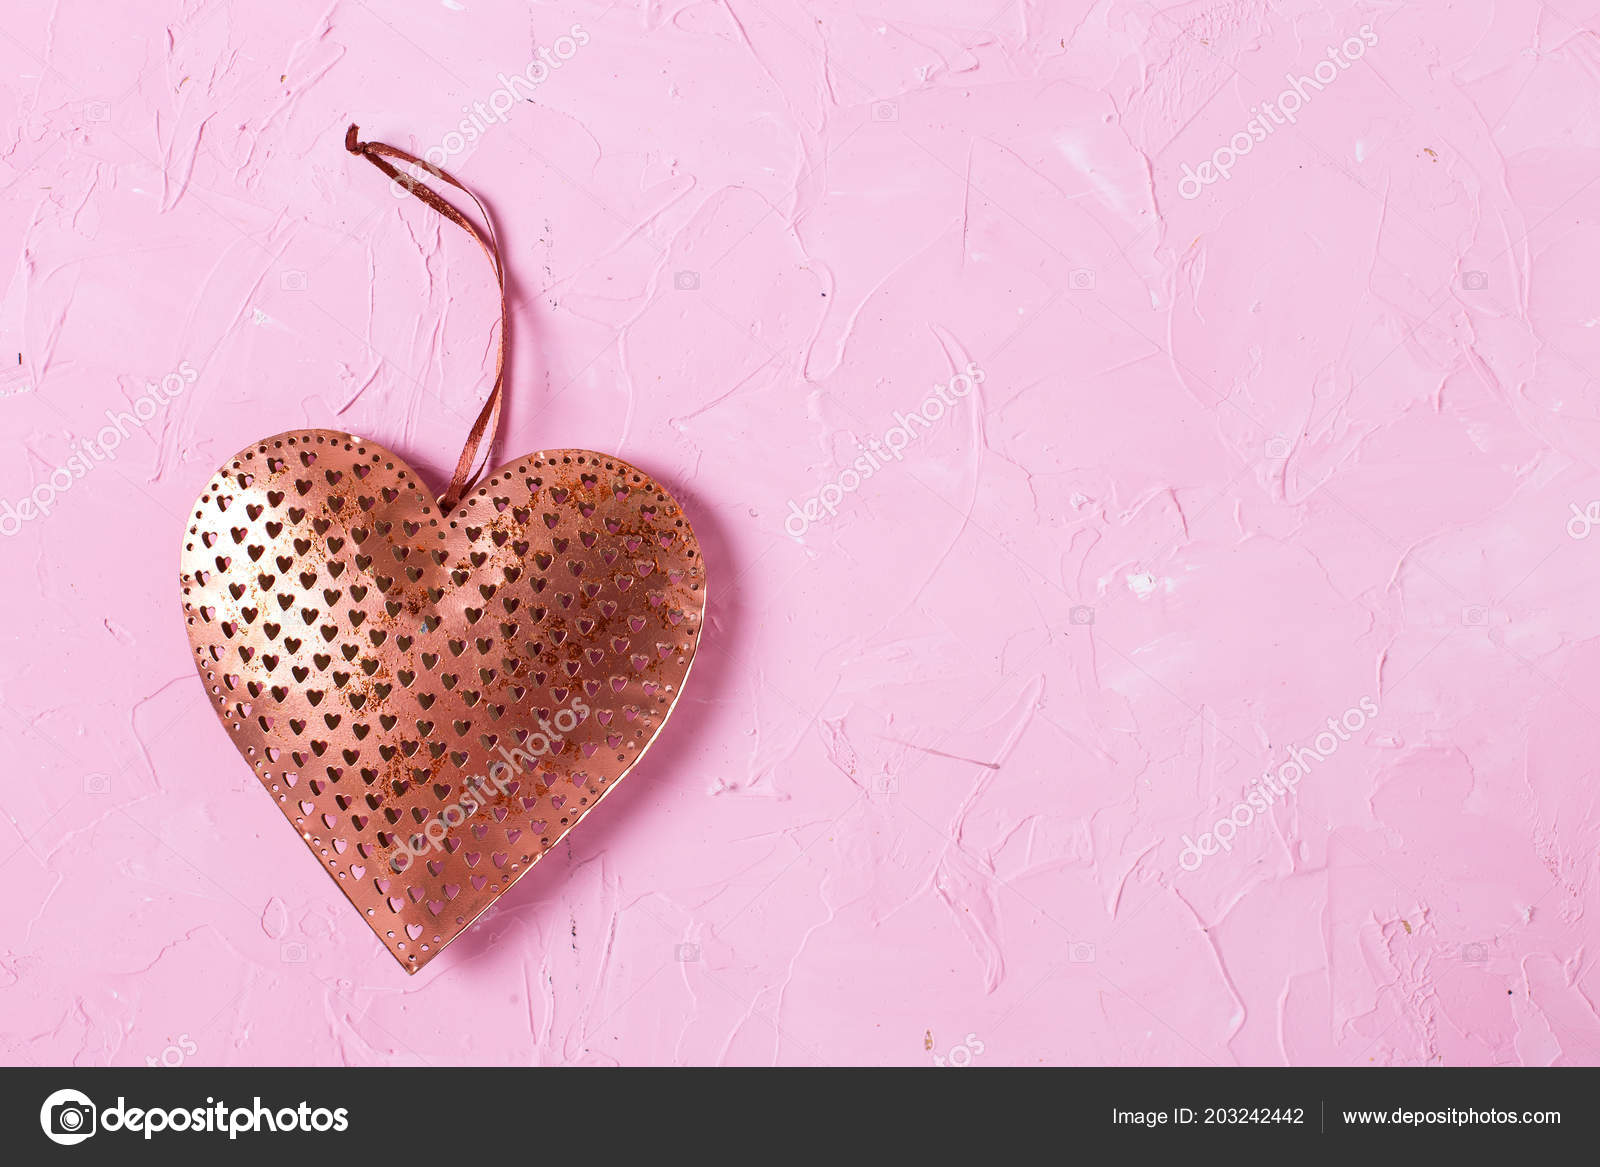 Copper Rustic Heart On Pink Textured Background Photo By Daffodil